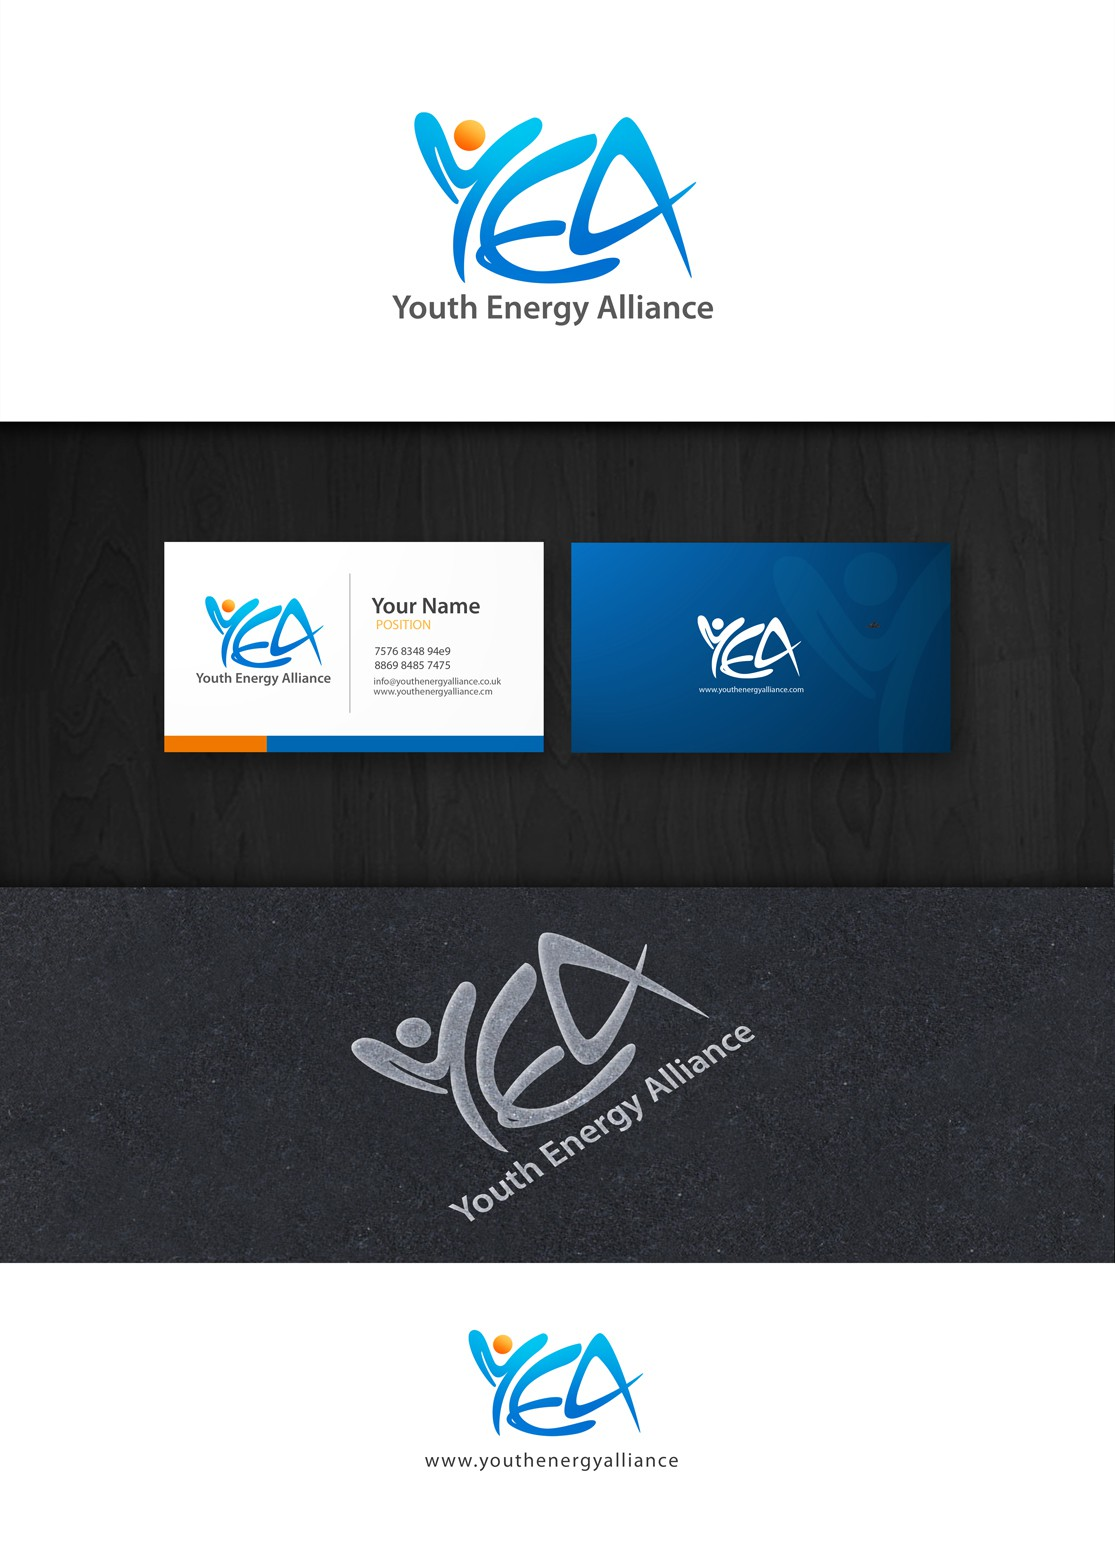 logo and business card for Youth Energy Alliance